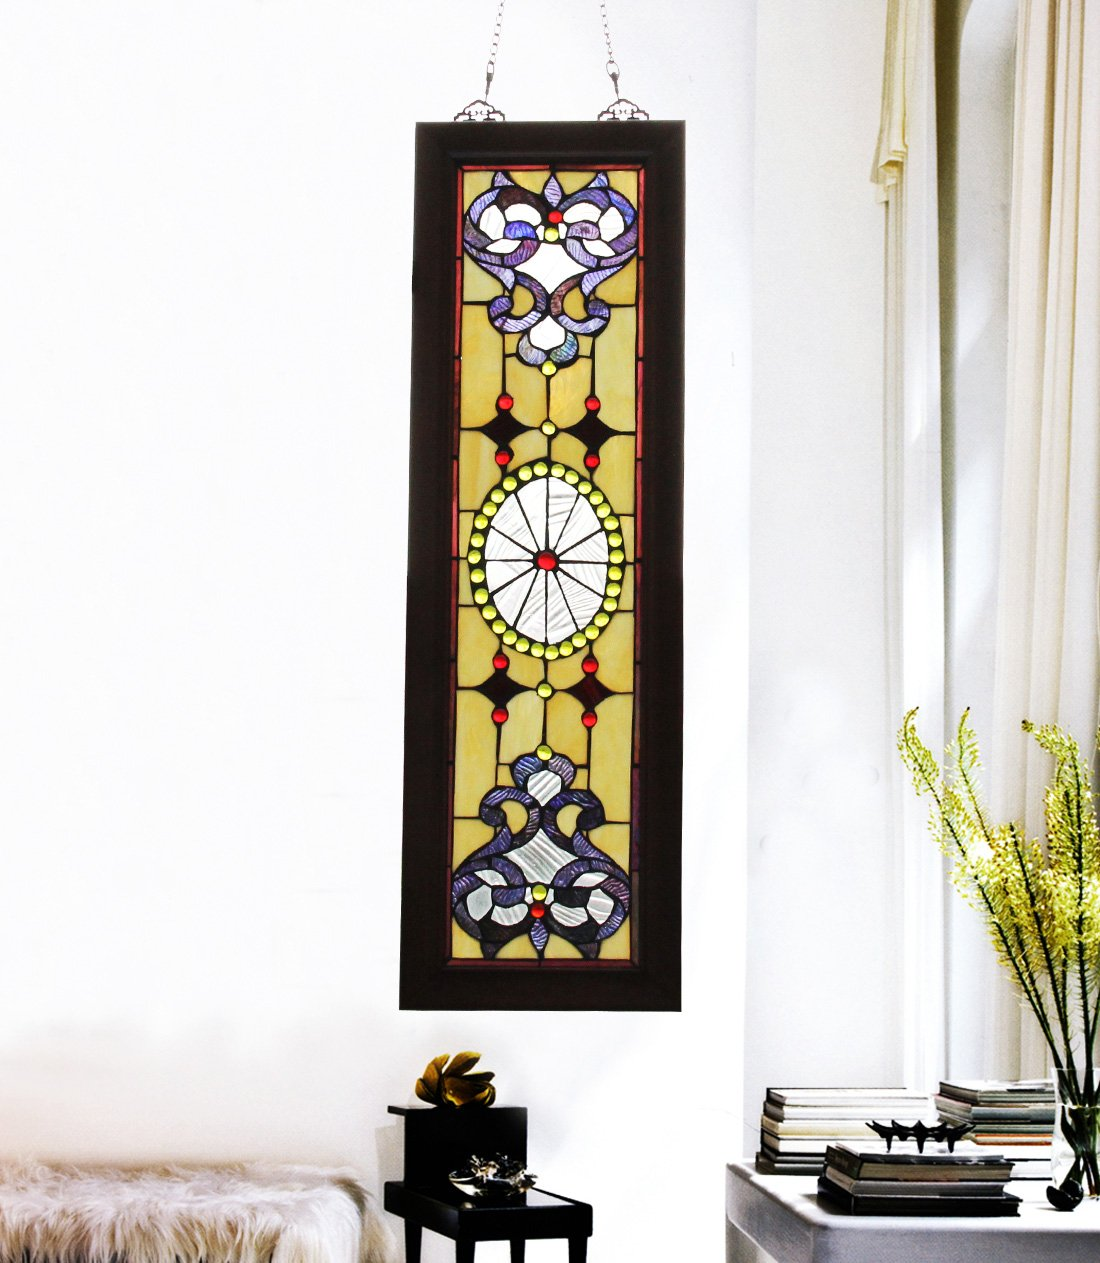 Makenier Vintage Tiffany Style Stained Church Art Glass Decorative Long and Narrow Window Panel Wall Hanging 9